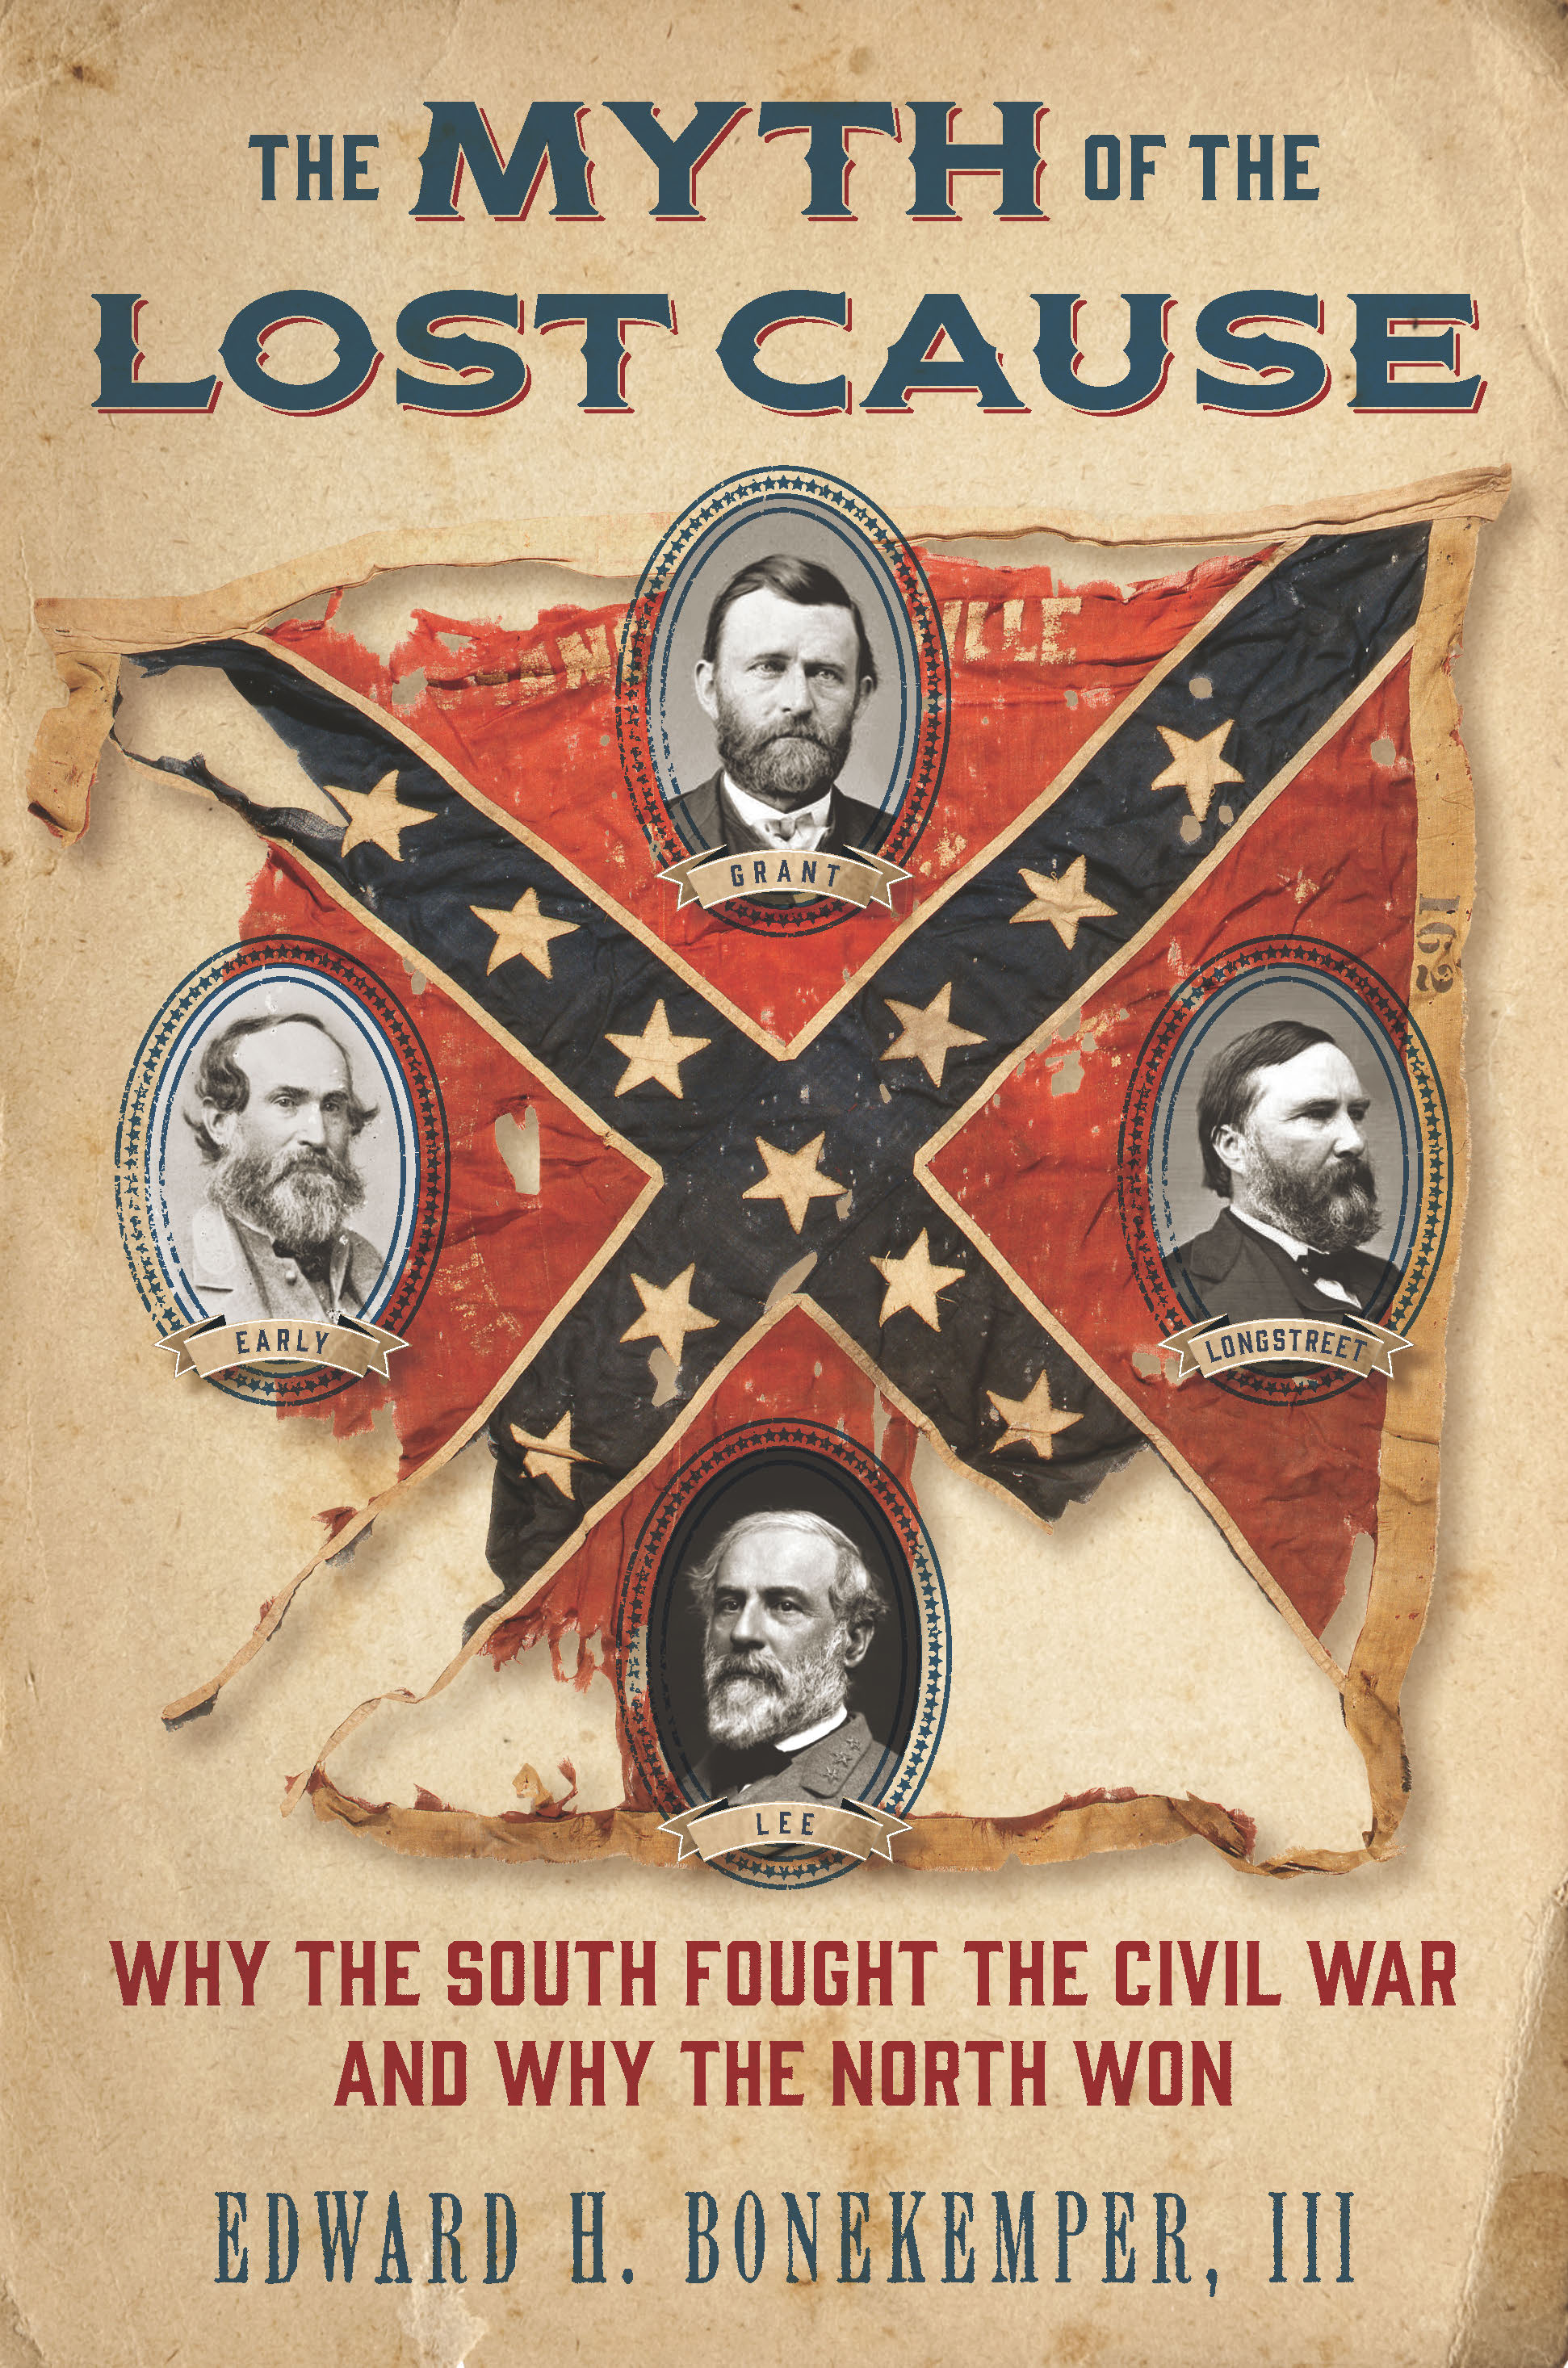 a discussion of whether slavery was the cause of the american civil war Learn cause of the civil war quiz with free interactive flashcards choose from 500 different sets of cause of the civil war quiz flashcards on quizlet.